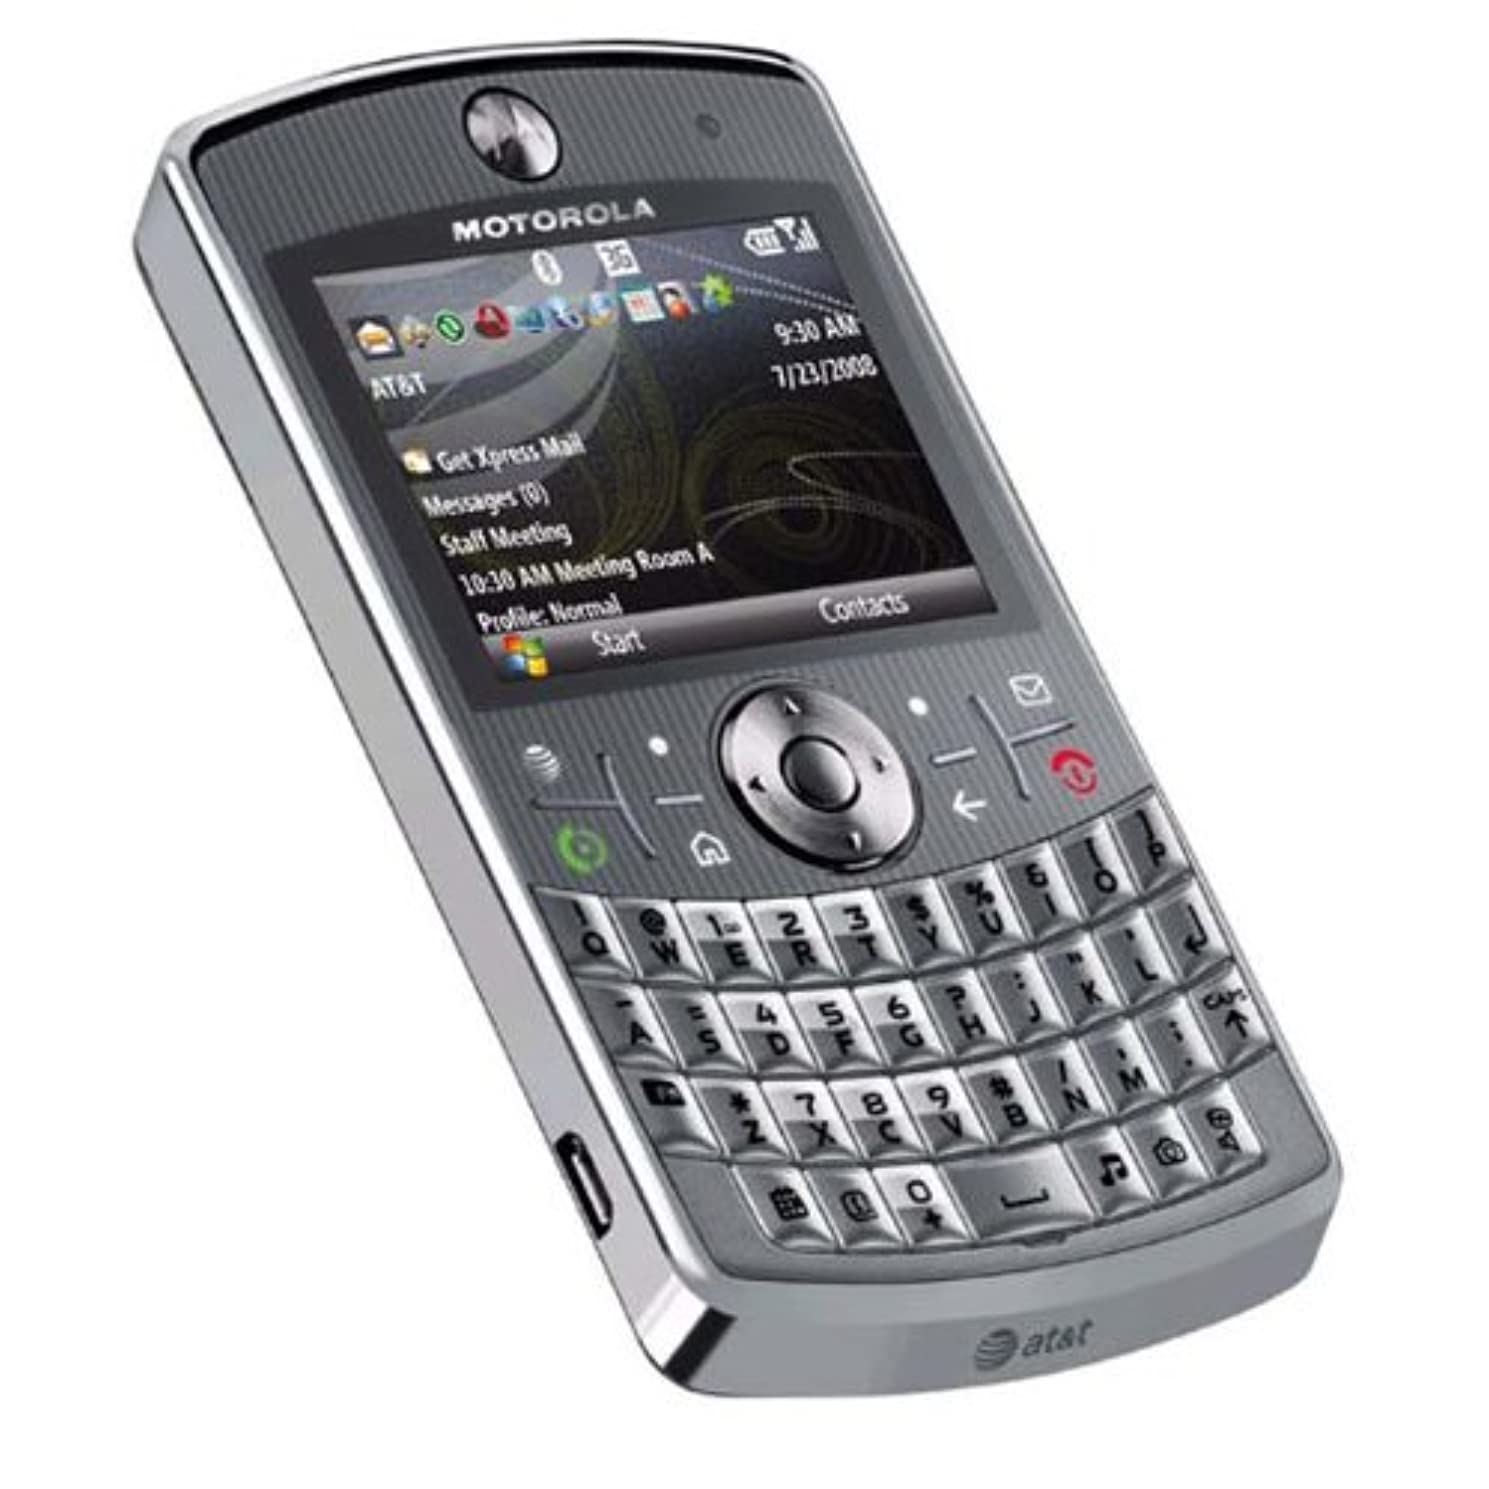 Motorola Q9h Unlocked PDA Cell Phone with 2 MP Camera and Windows Mobile 6.0-U.S. Version with Warranty (Silver)